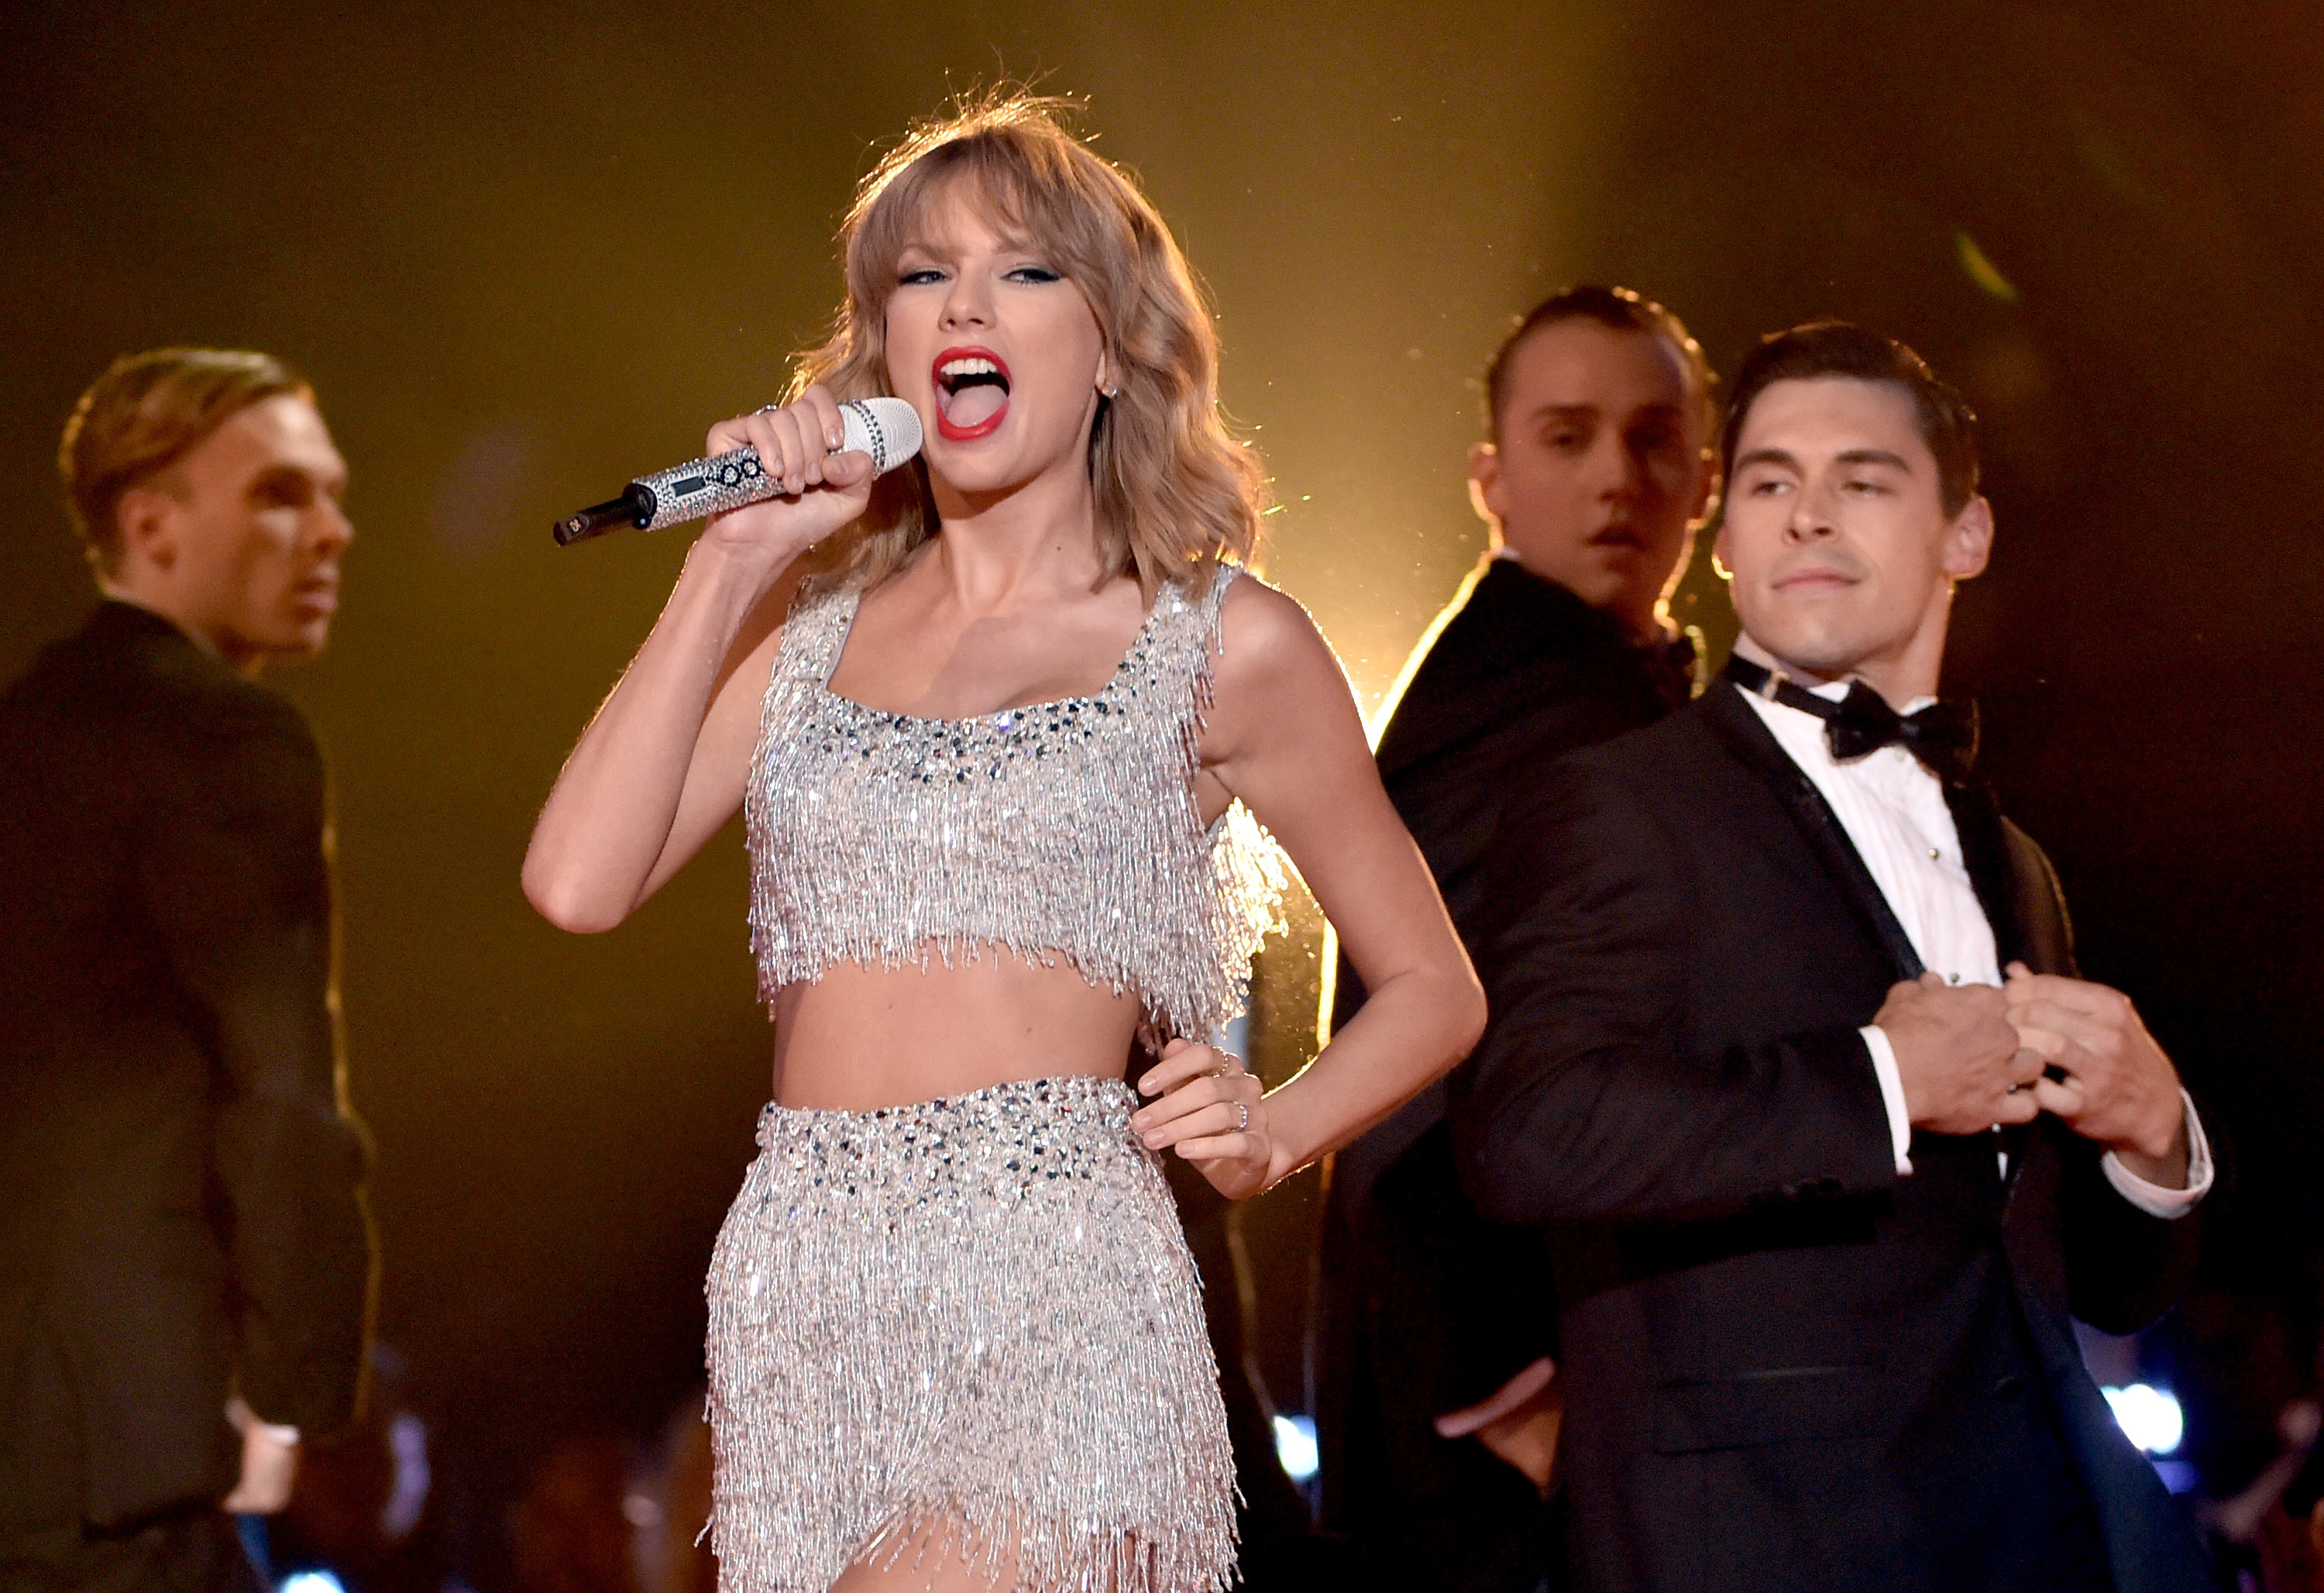 Vmas 2014 Taylor Swift Throws Shake It Off Pop Party Rolling Stone